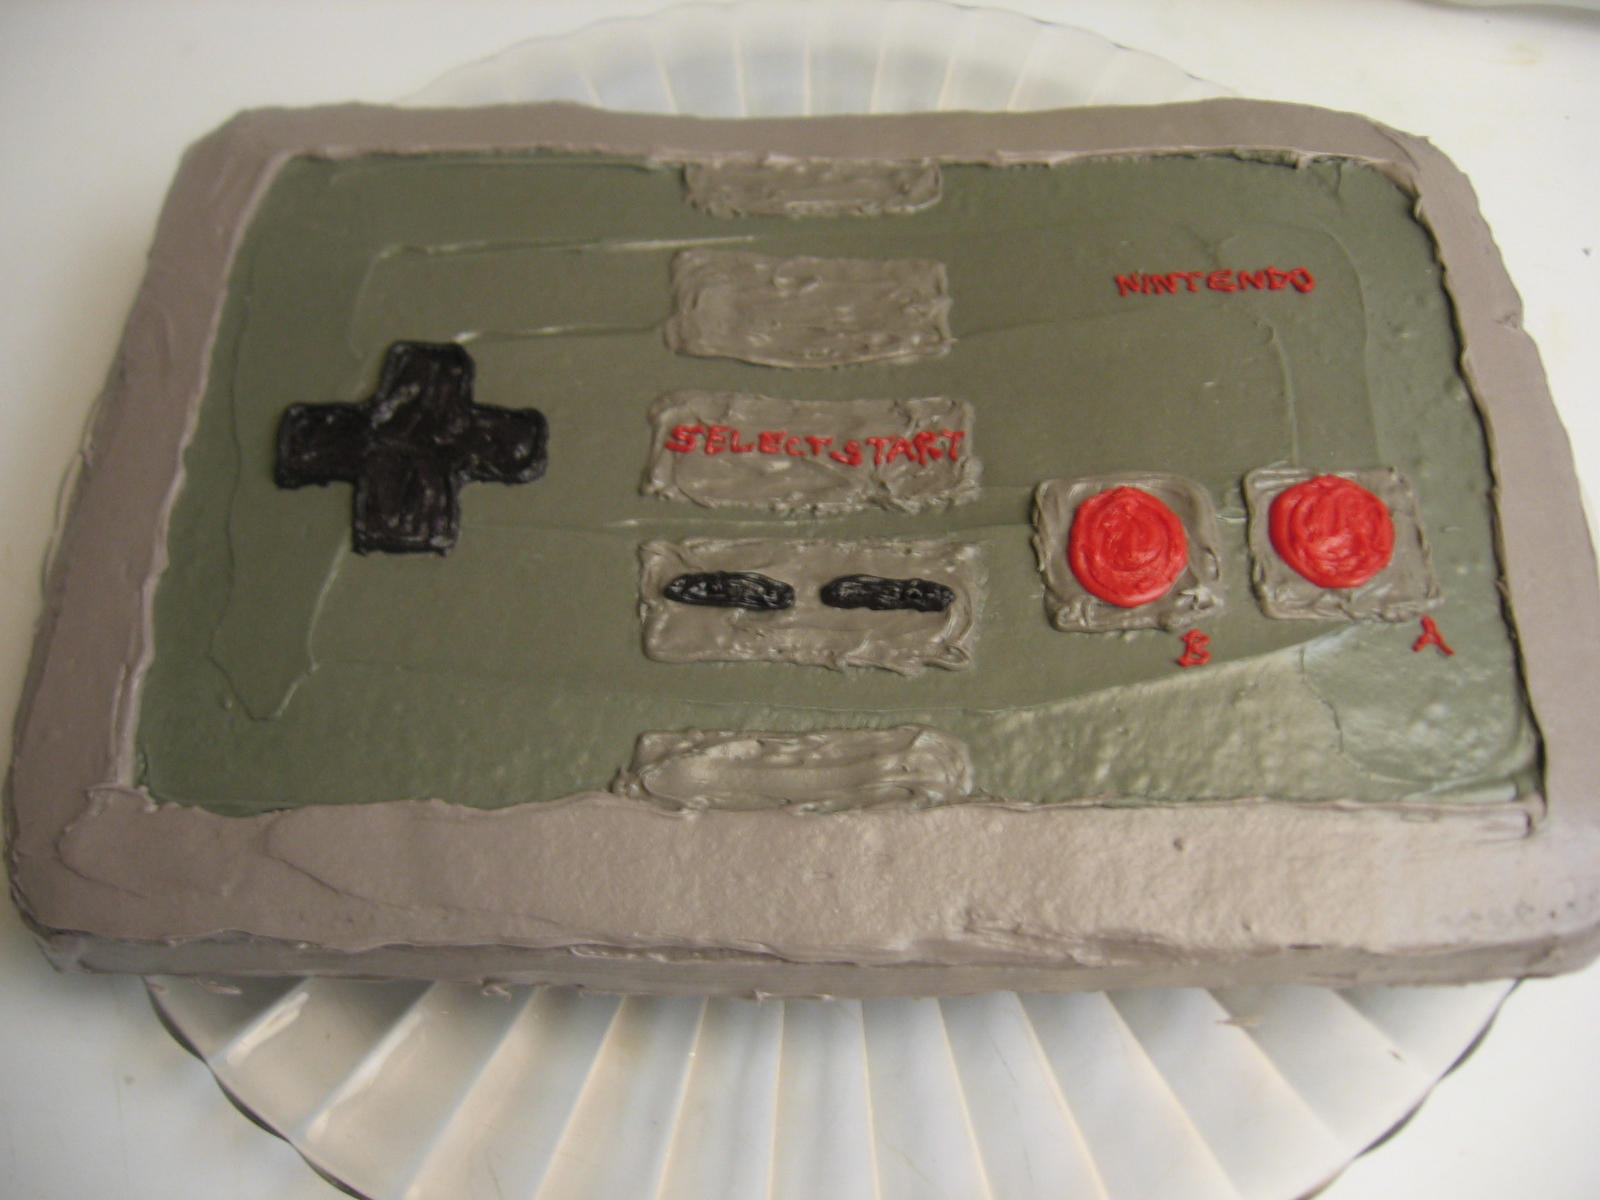 Nintendo Controller Cake 2 by pateachoux